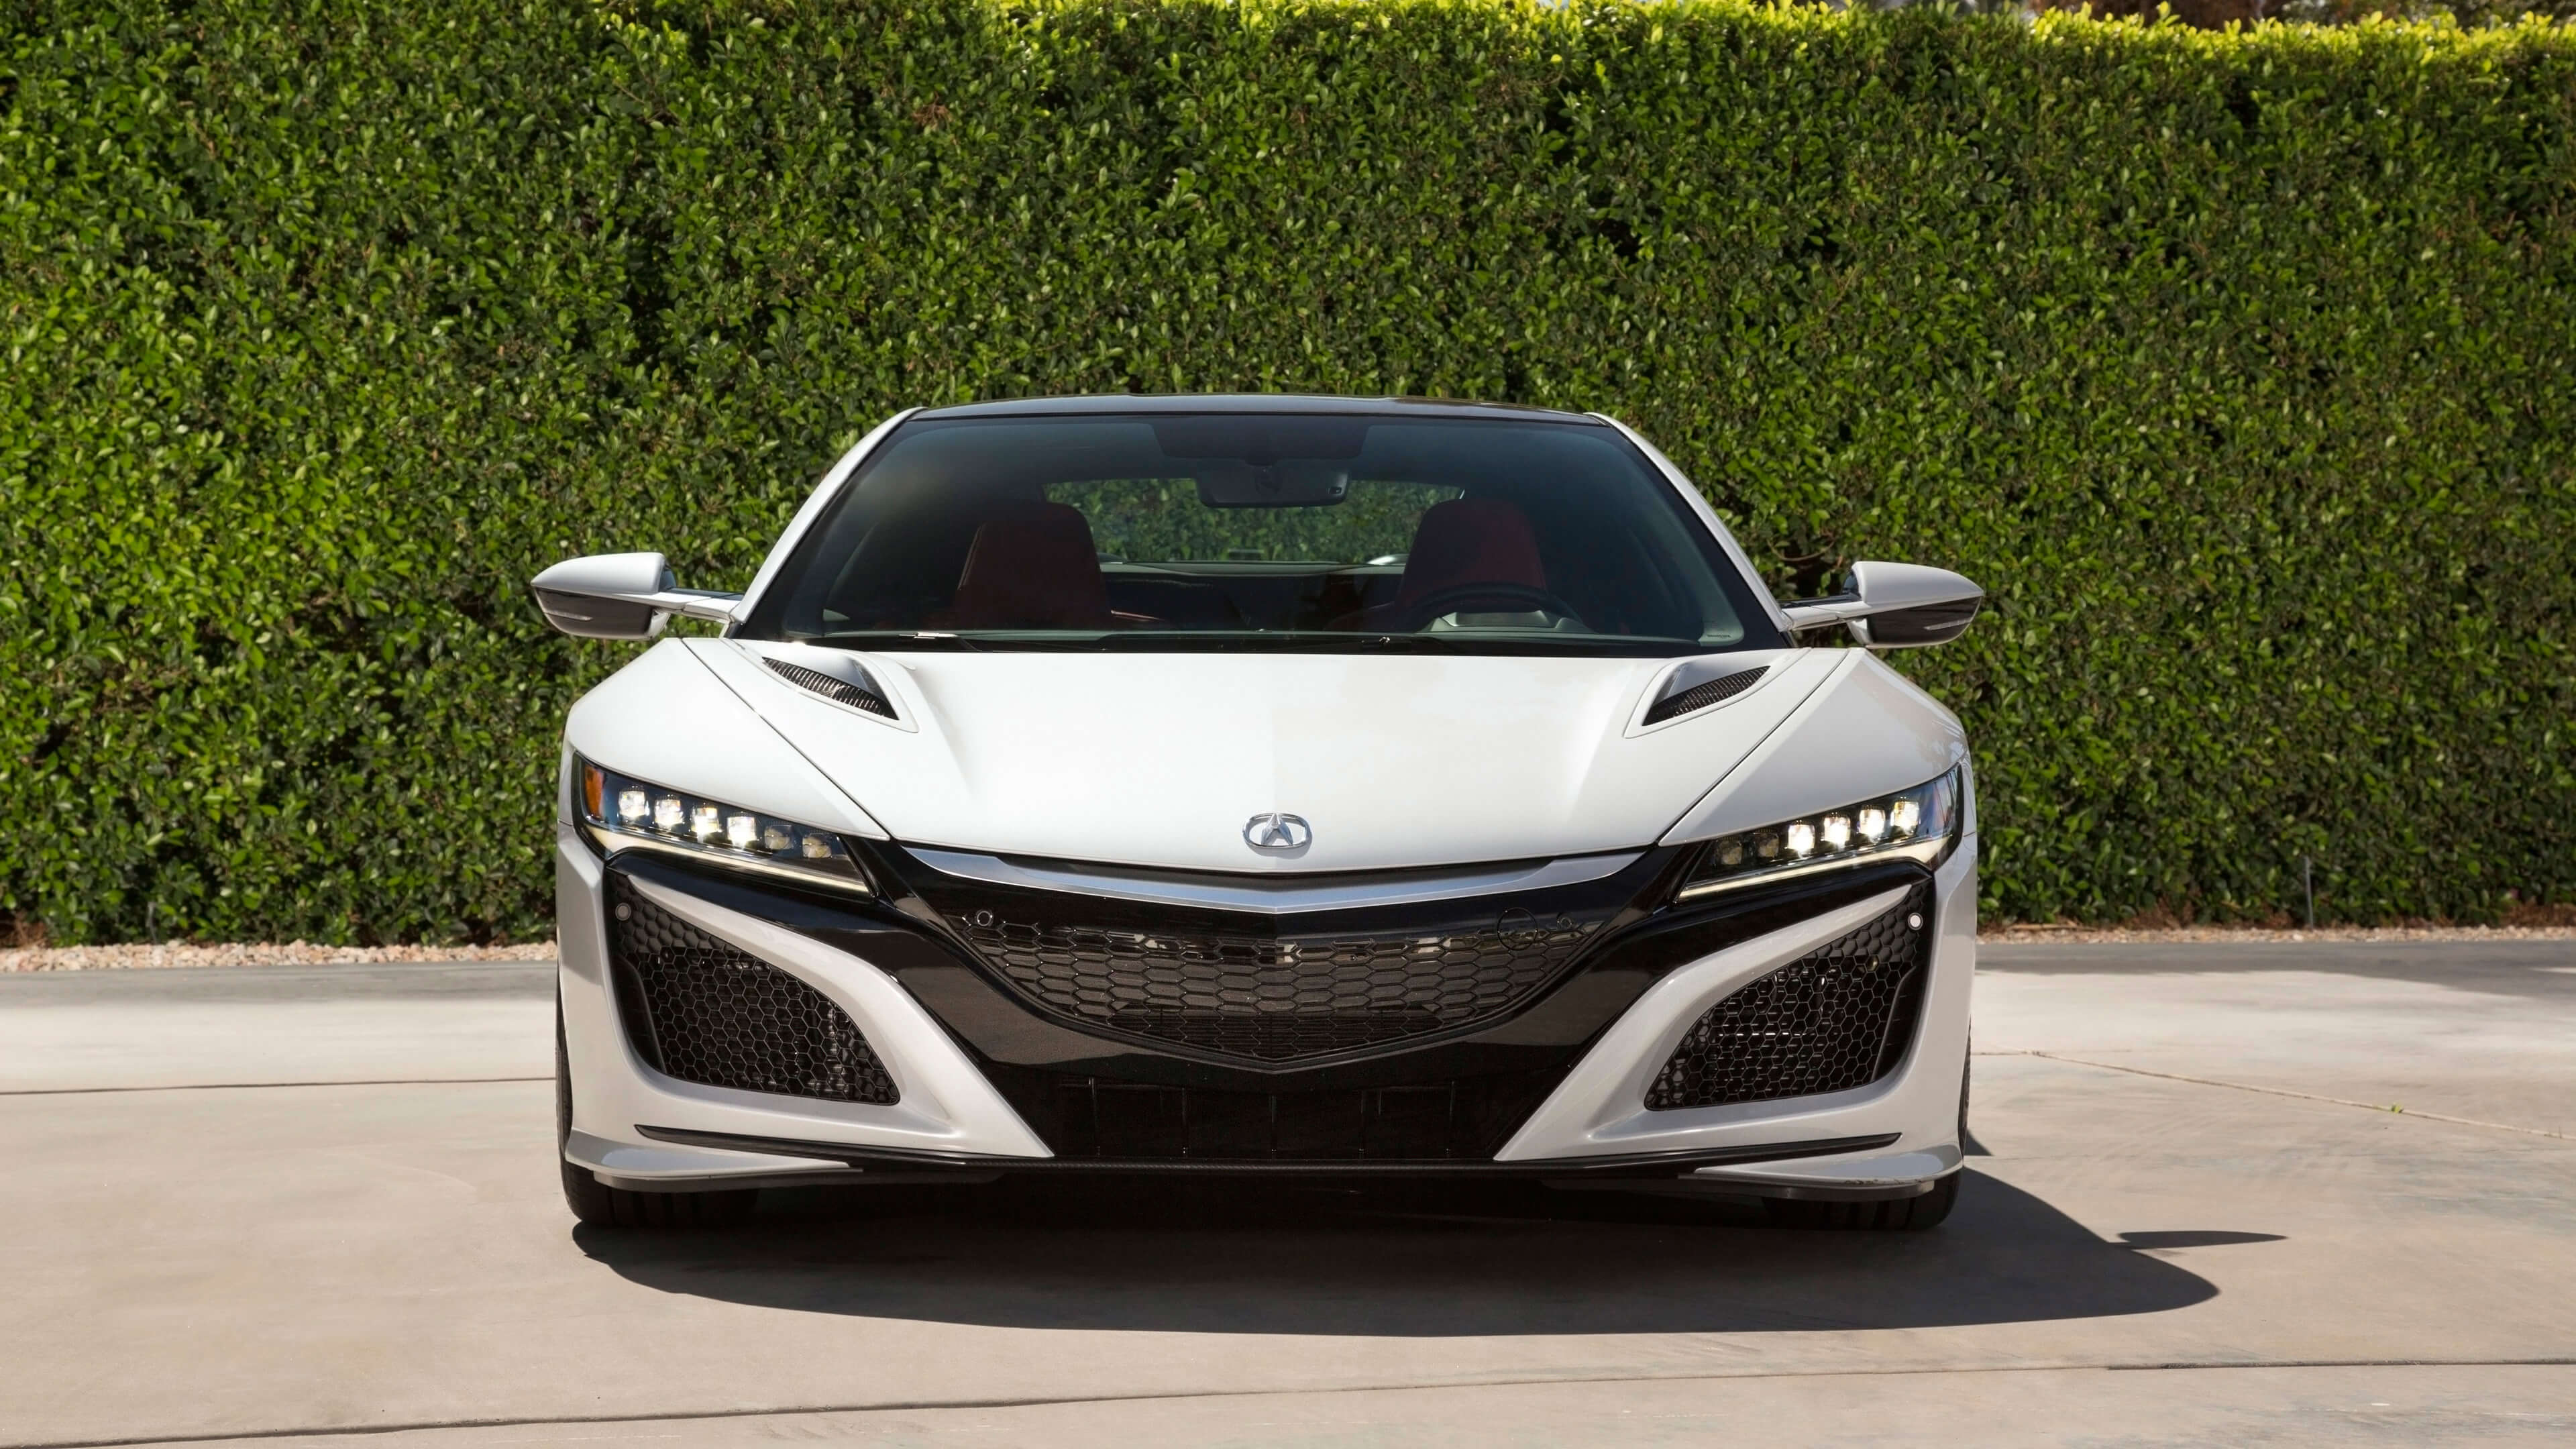 White Acura NSX HD Wallpaper Background 63387 3840x2160px 3840x2160